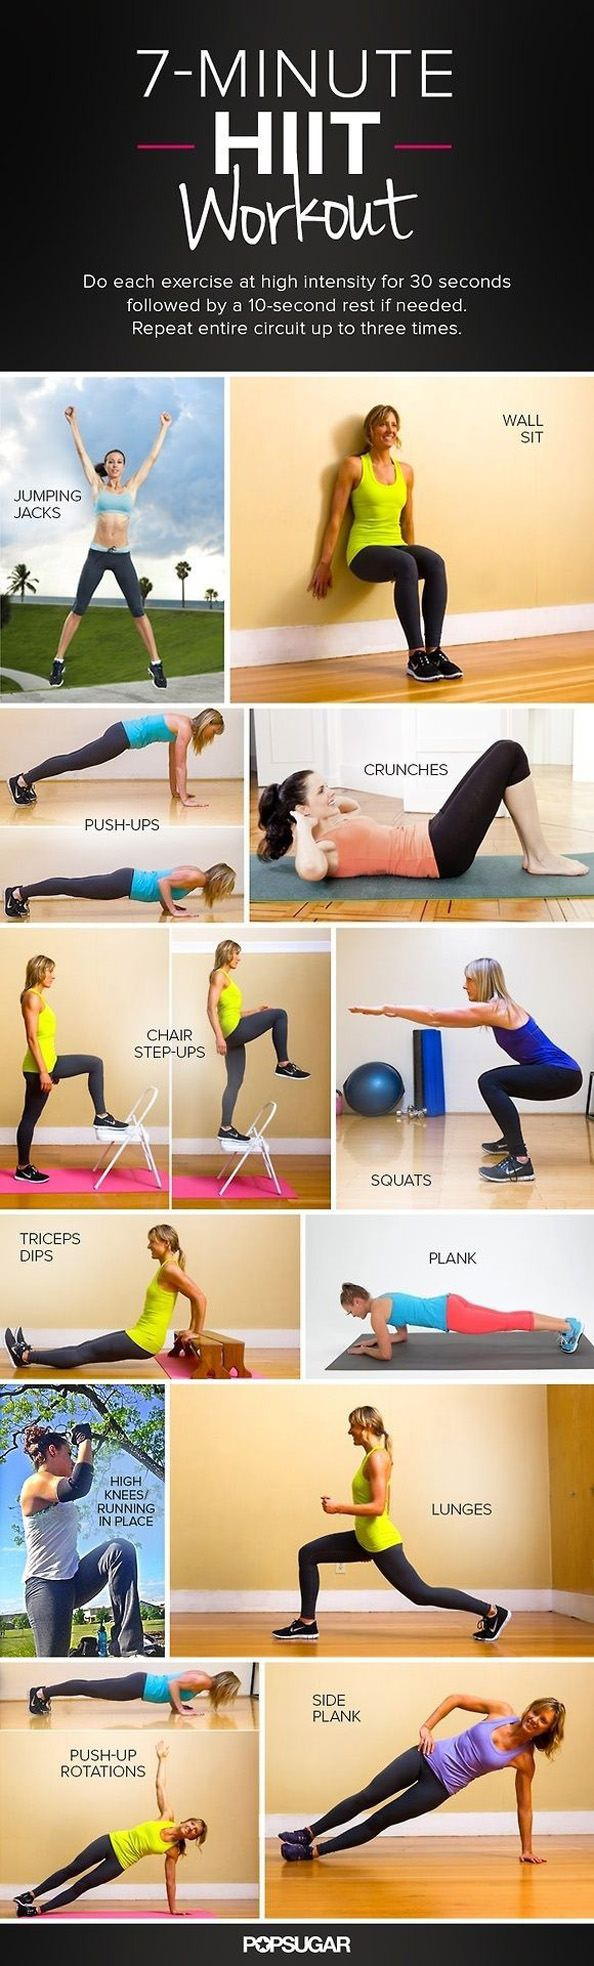 SEVEN MINUTE HIIT WORKOUT ~~~ circuit workout to be run three times at high intensity developed by the the american college of sports medicine.